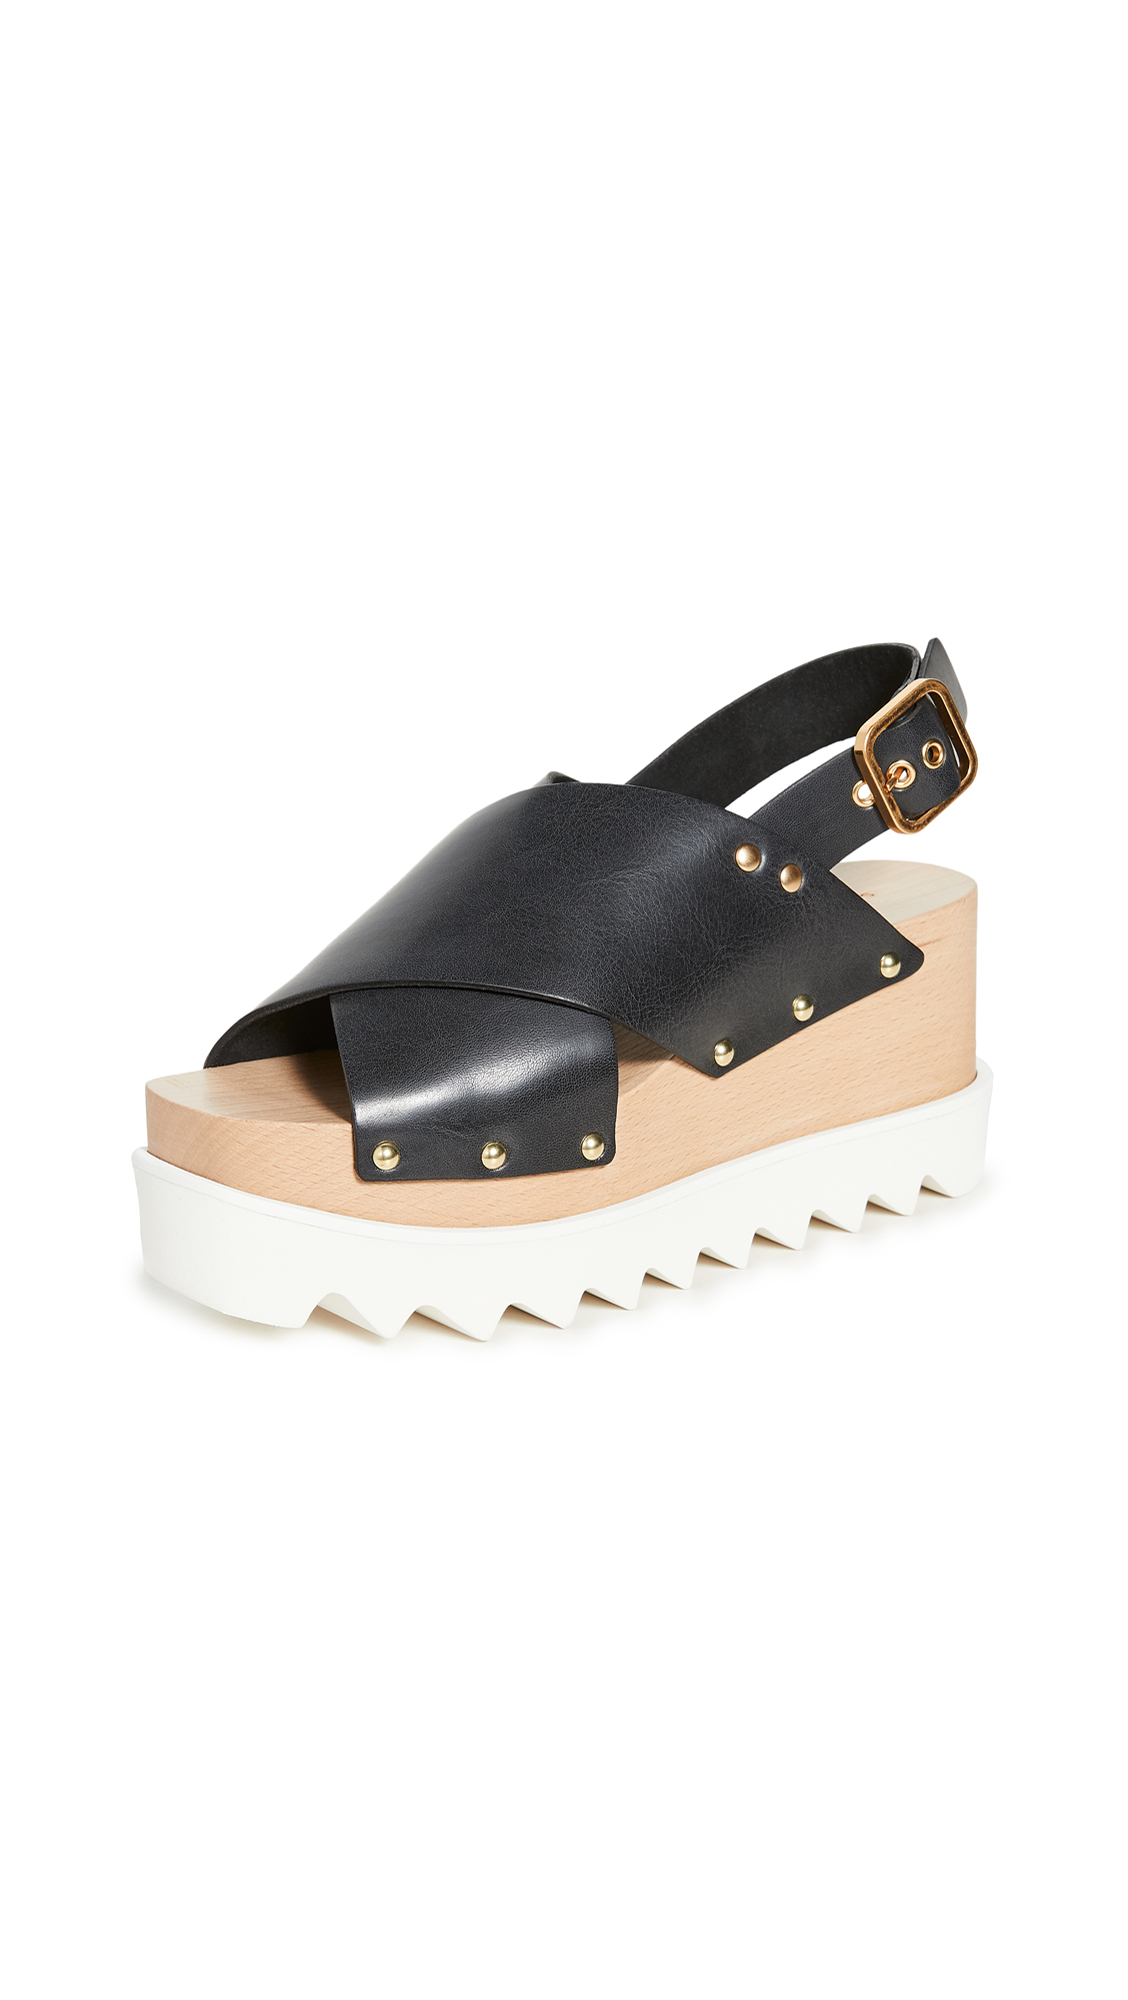 Buy Stella McCartney Percy Crisscross Chunky Sandals online, shop Stella McCartney